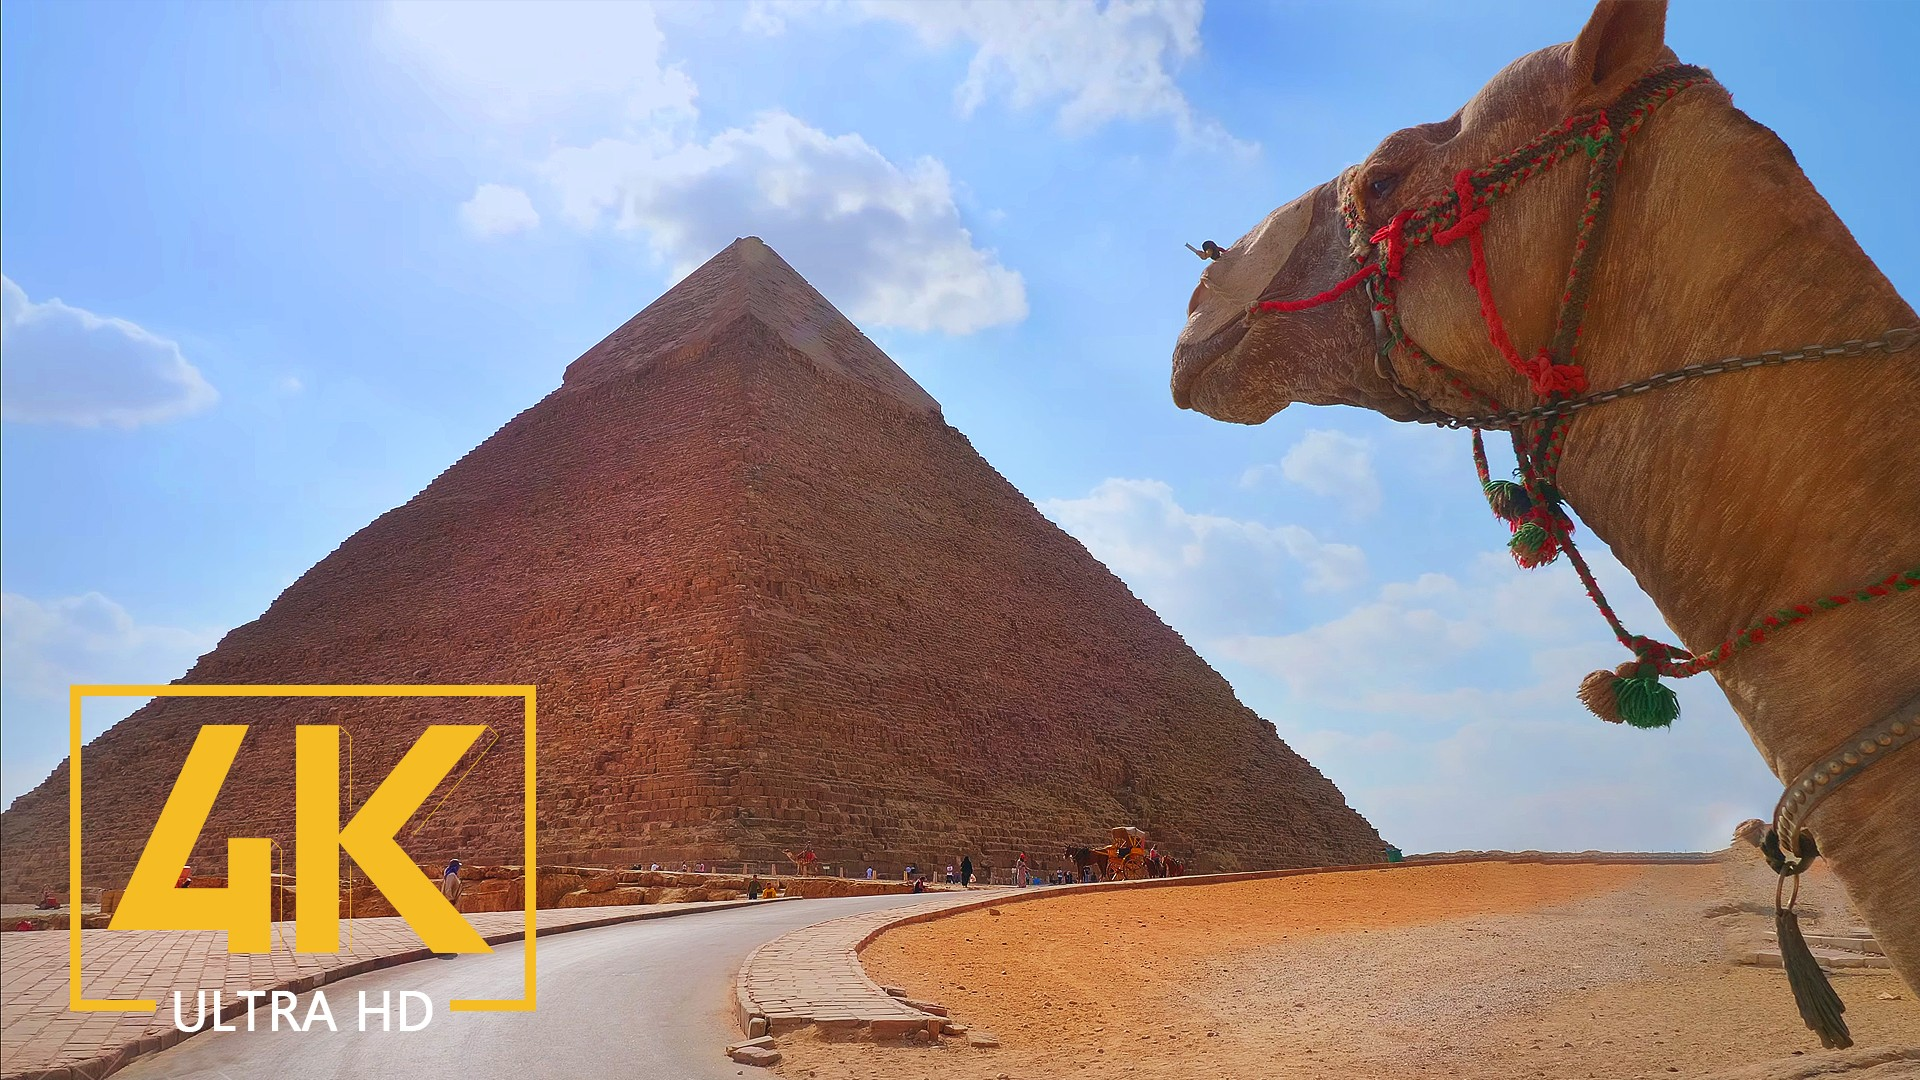 EGYPT The Pyramids & Temples